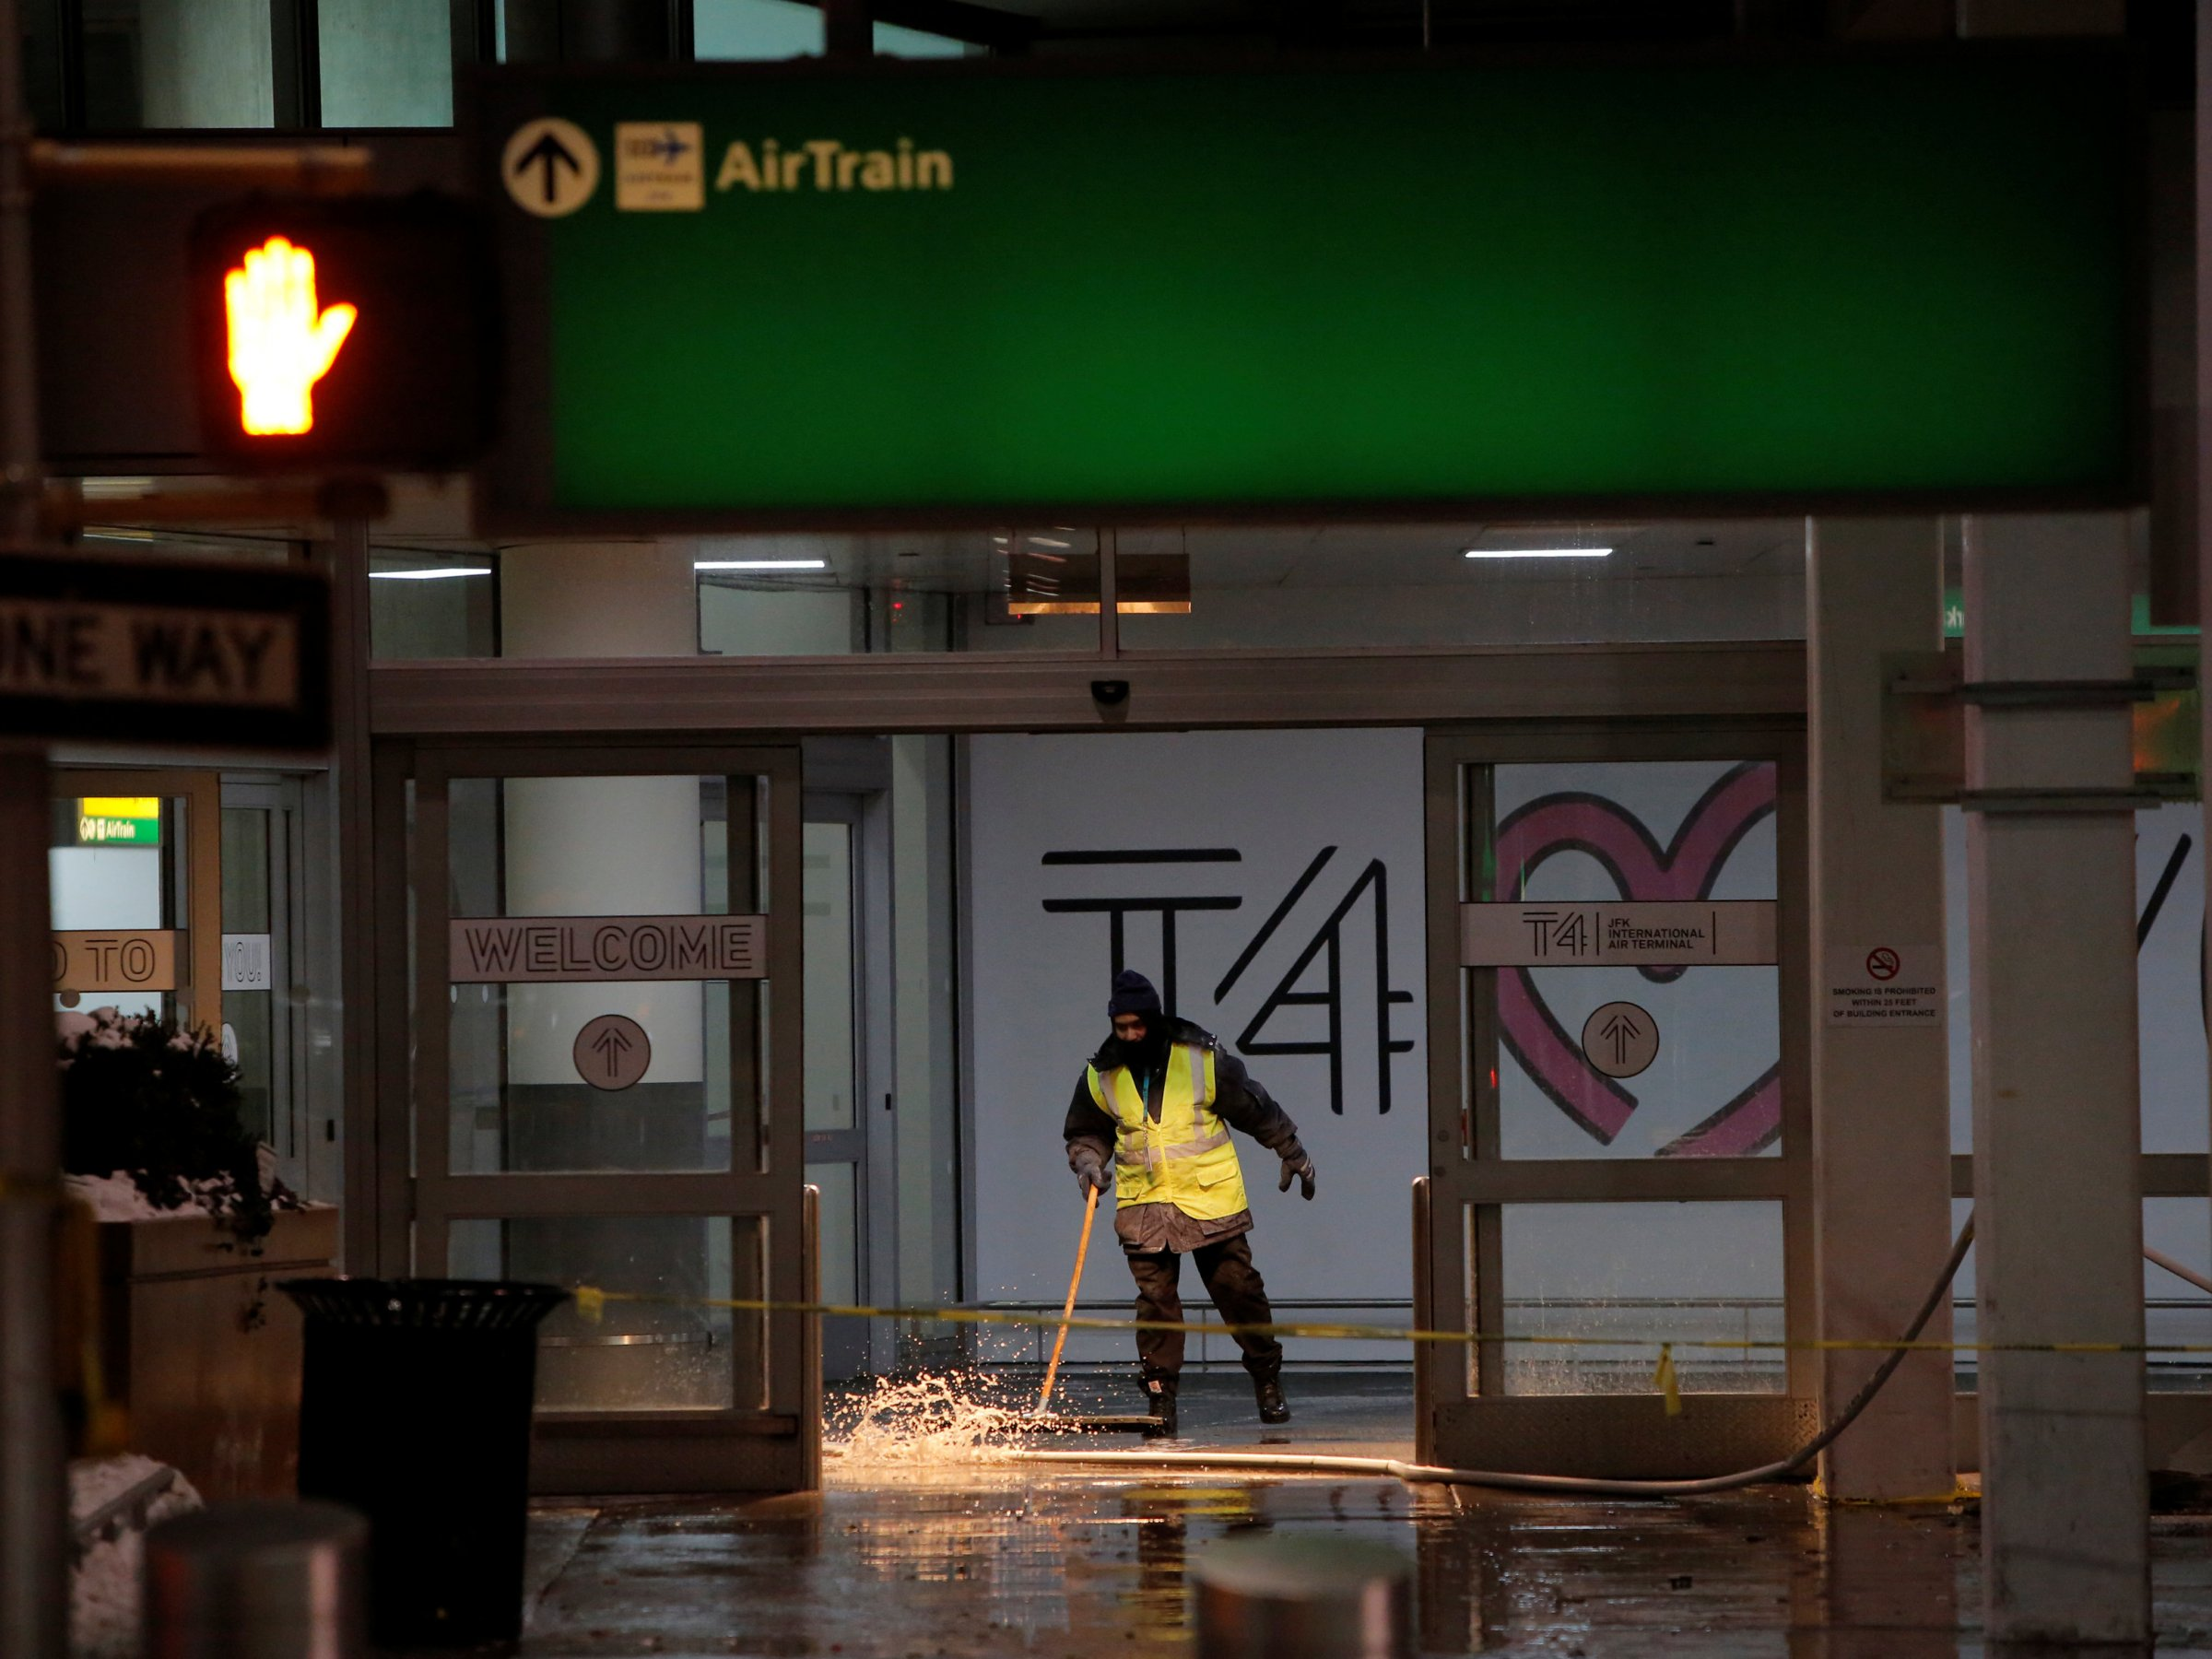 Chaos at JFK airport with flood, storm backlog